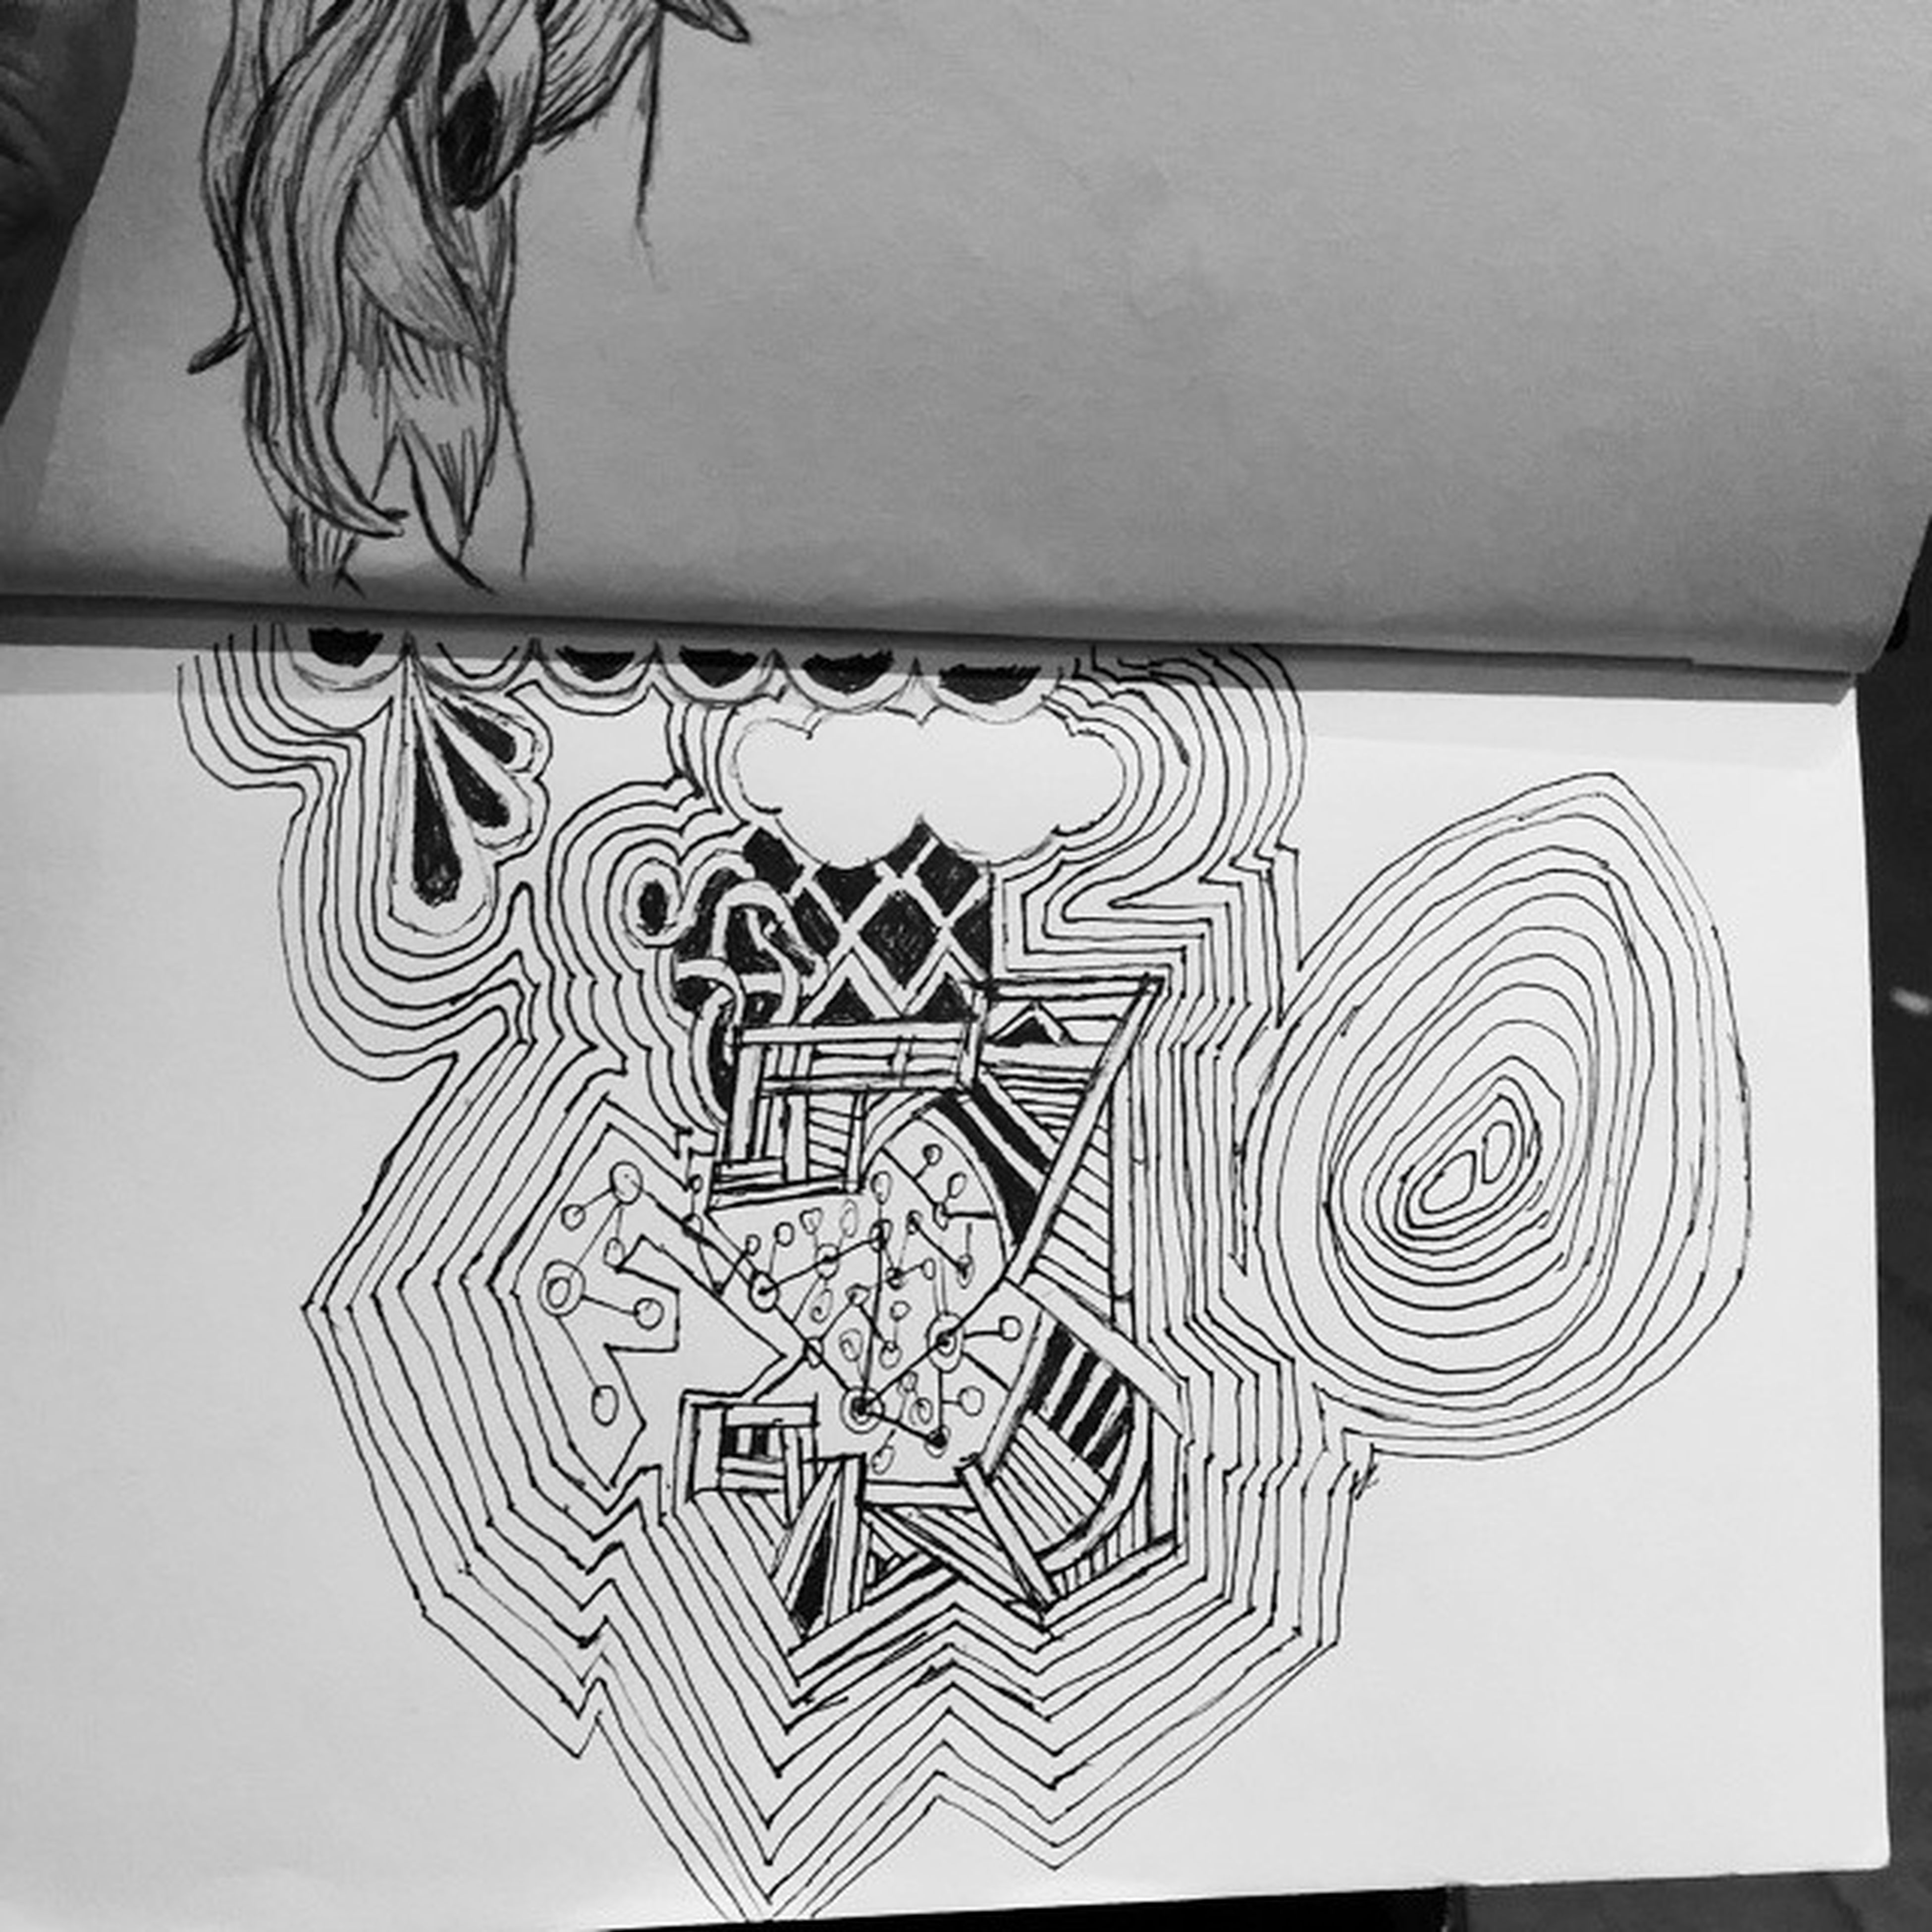 A little Typography Art Pendrawing Micron Micron03 Drawing Arts ArtWork Another Artist Nightart Starbucks Coffee Caffeine Noteventired Notebookart Sketches Sketching GodILoveArt